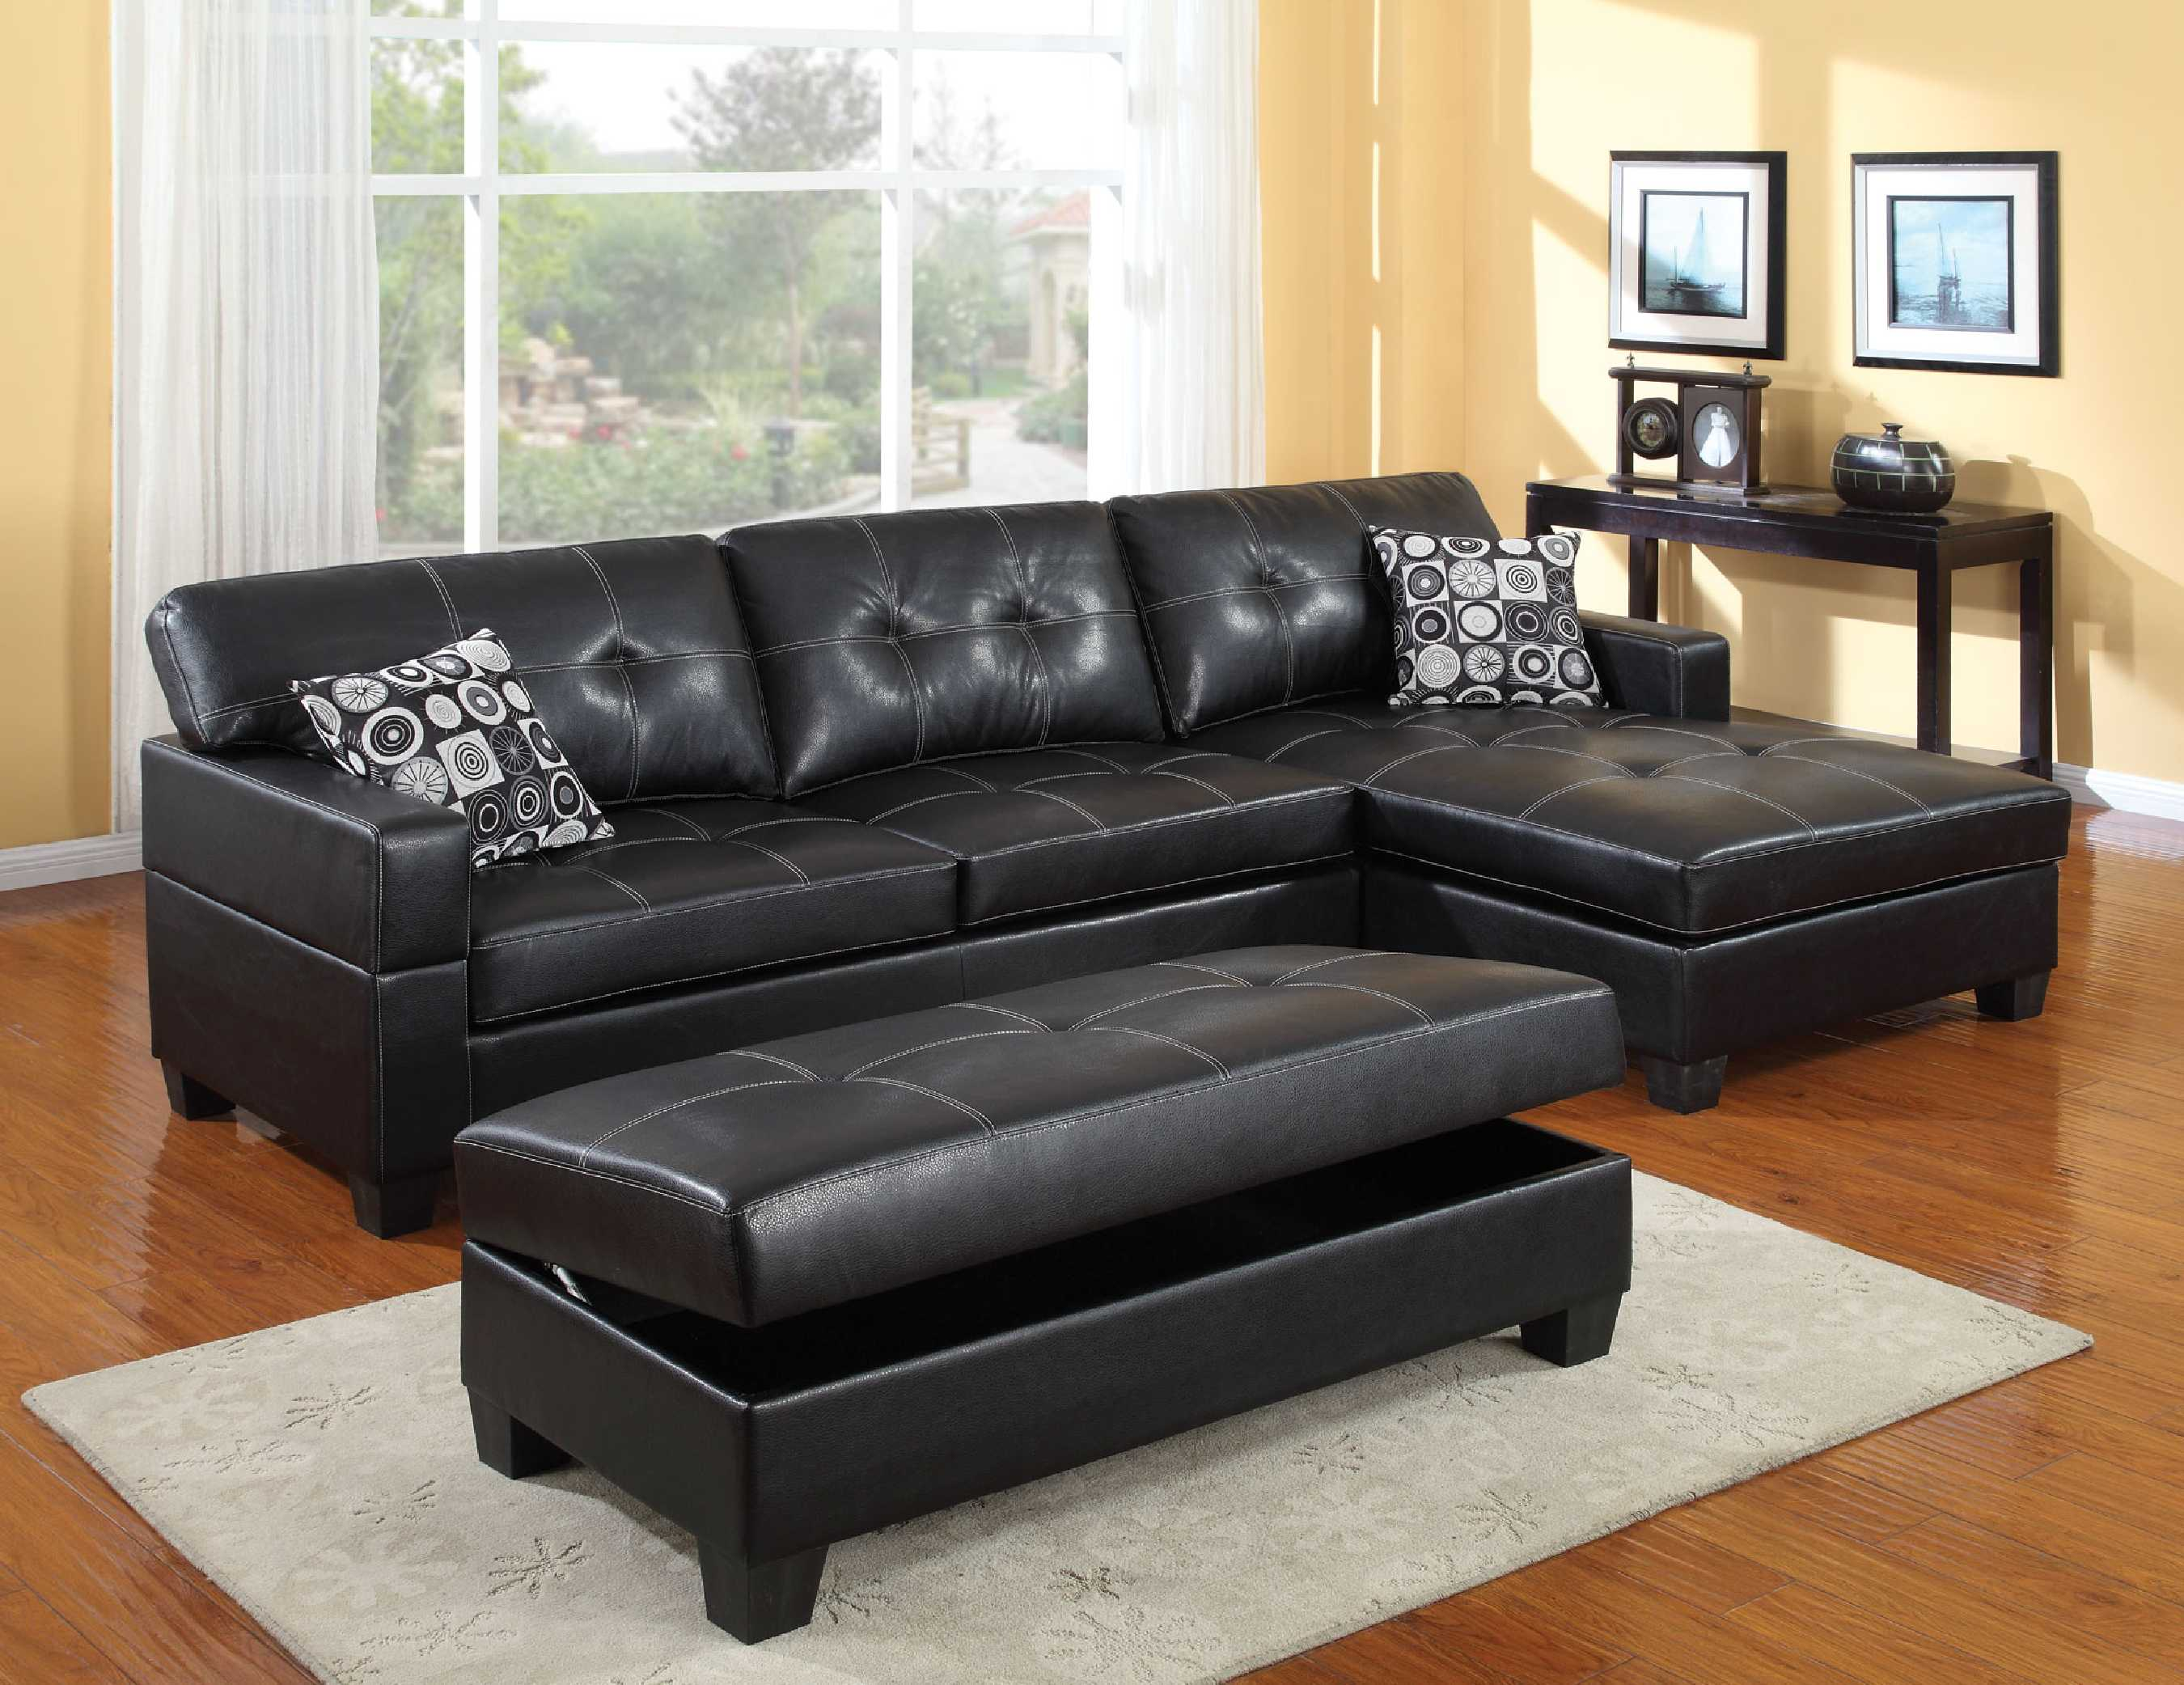 Image of: oversized black coffee table